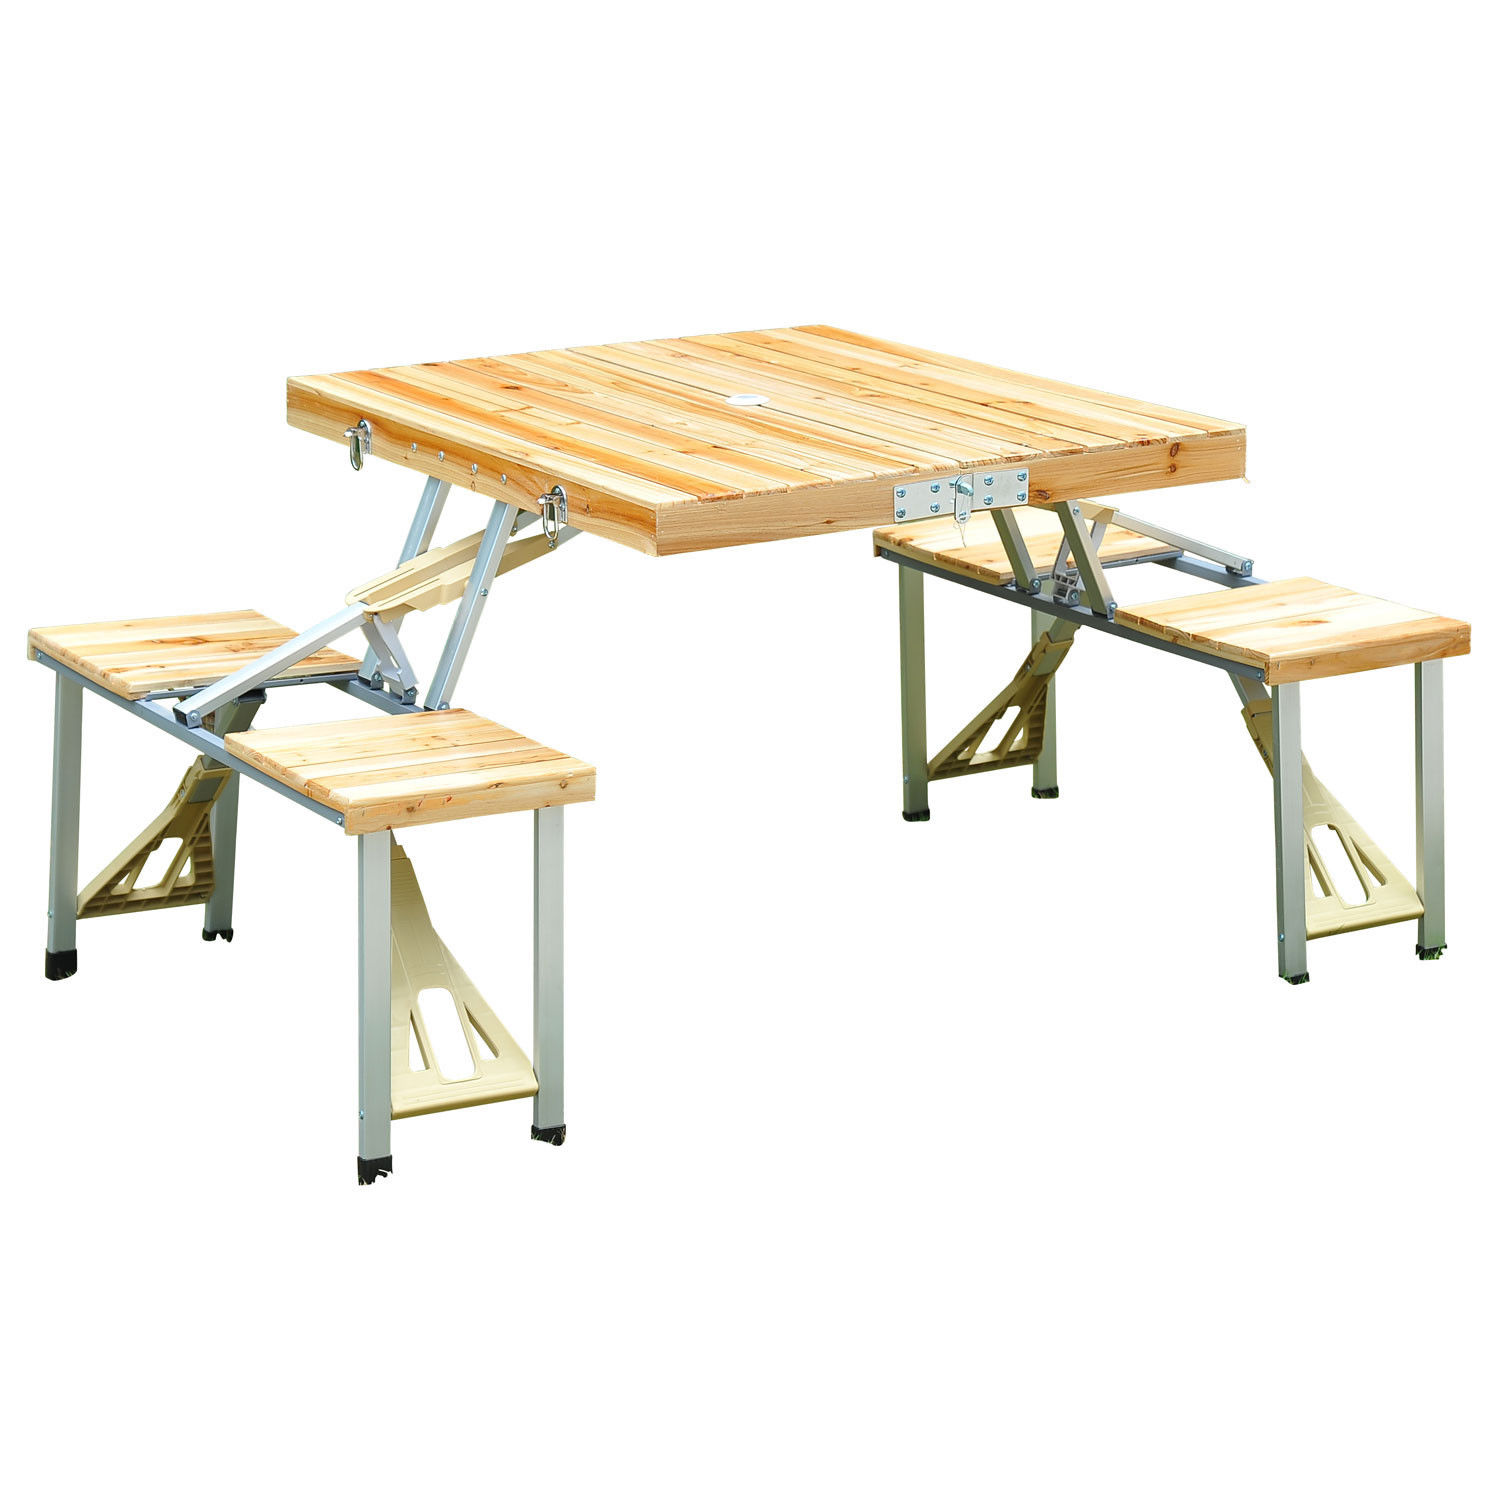 Portable-Folding-Camping-Picnic-Table-Party-Outdoor-Garden-Chair-Stools-Set thumbnail 53